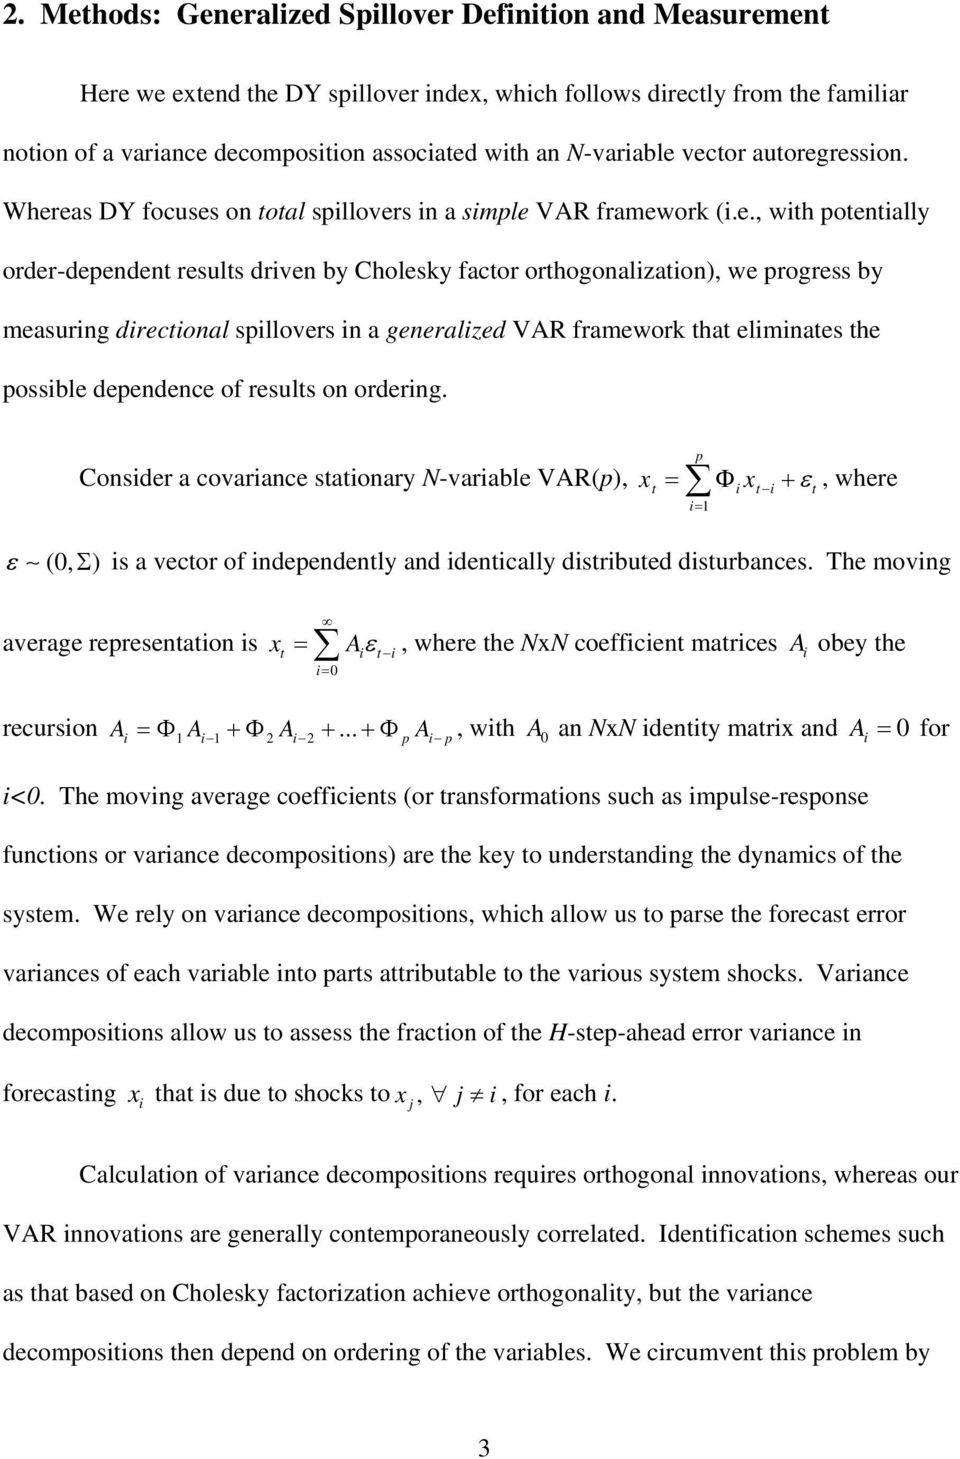 vector autoreression. Whereas DY focuses on total spillovers in a simple VAR framework (i.e., with potentially order-dependent results driven by Cholesky factor orthoonalization), we proress by